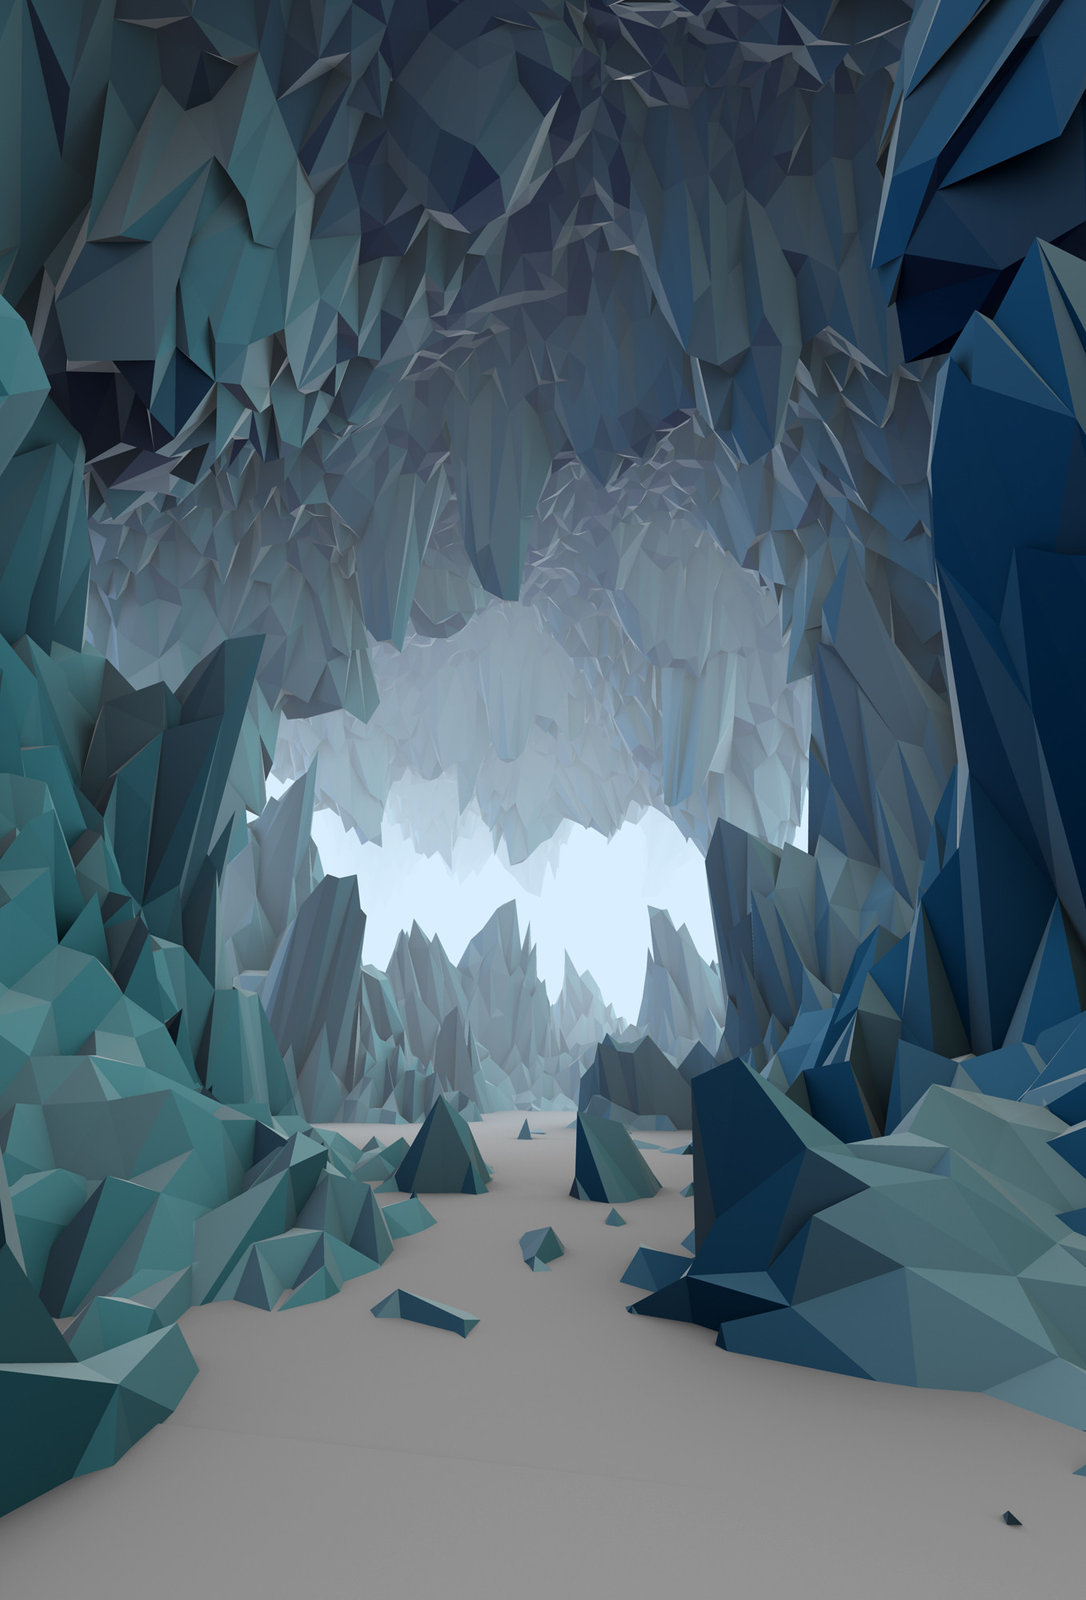 The Ice Cavern